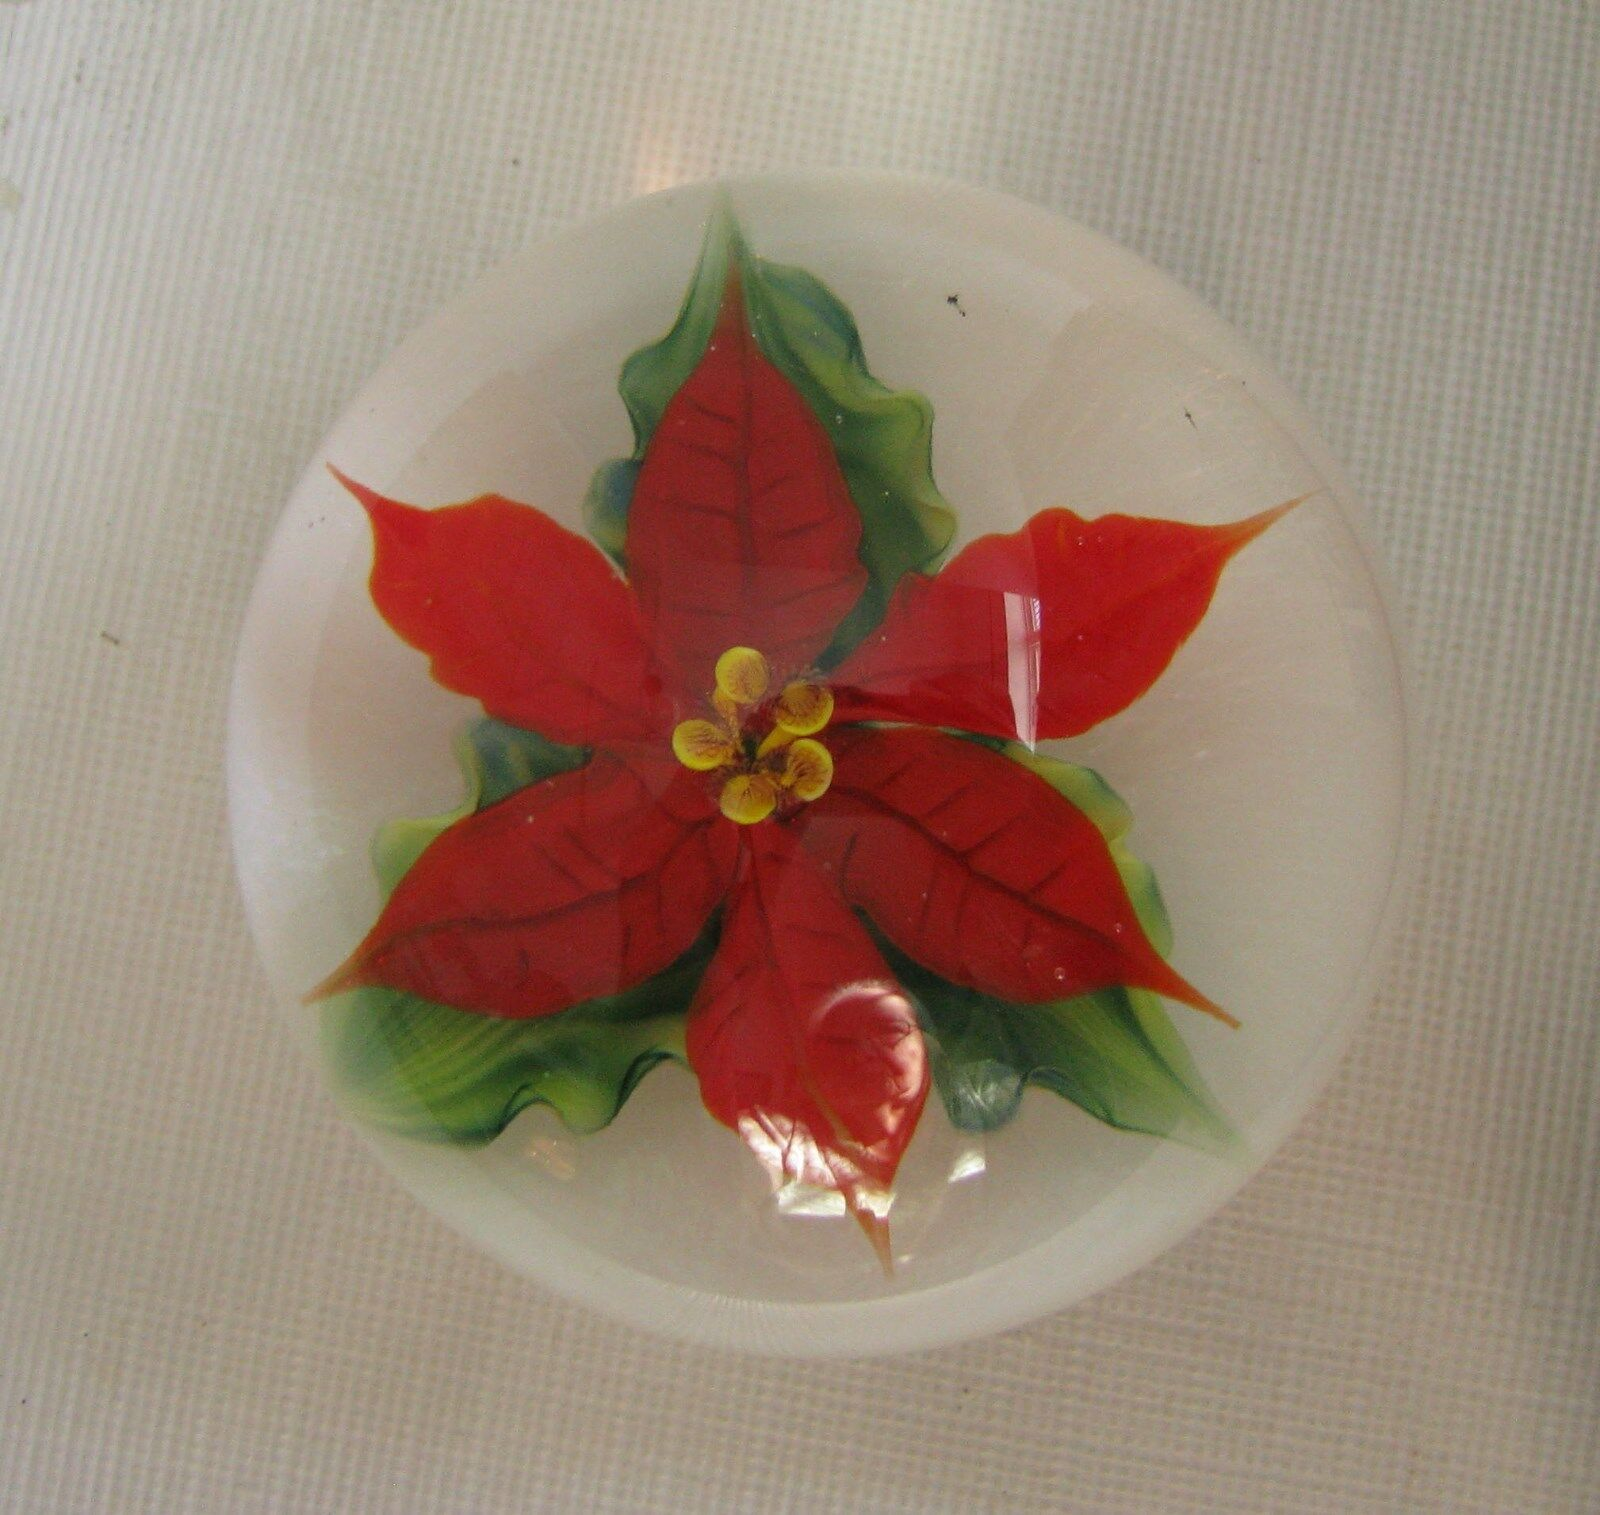 Primary image for Daniel Salazar for Lundberg Studio Glass Paperweight Rare Poinsettia Sgd Dated